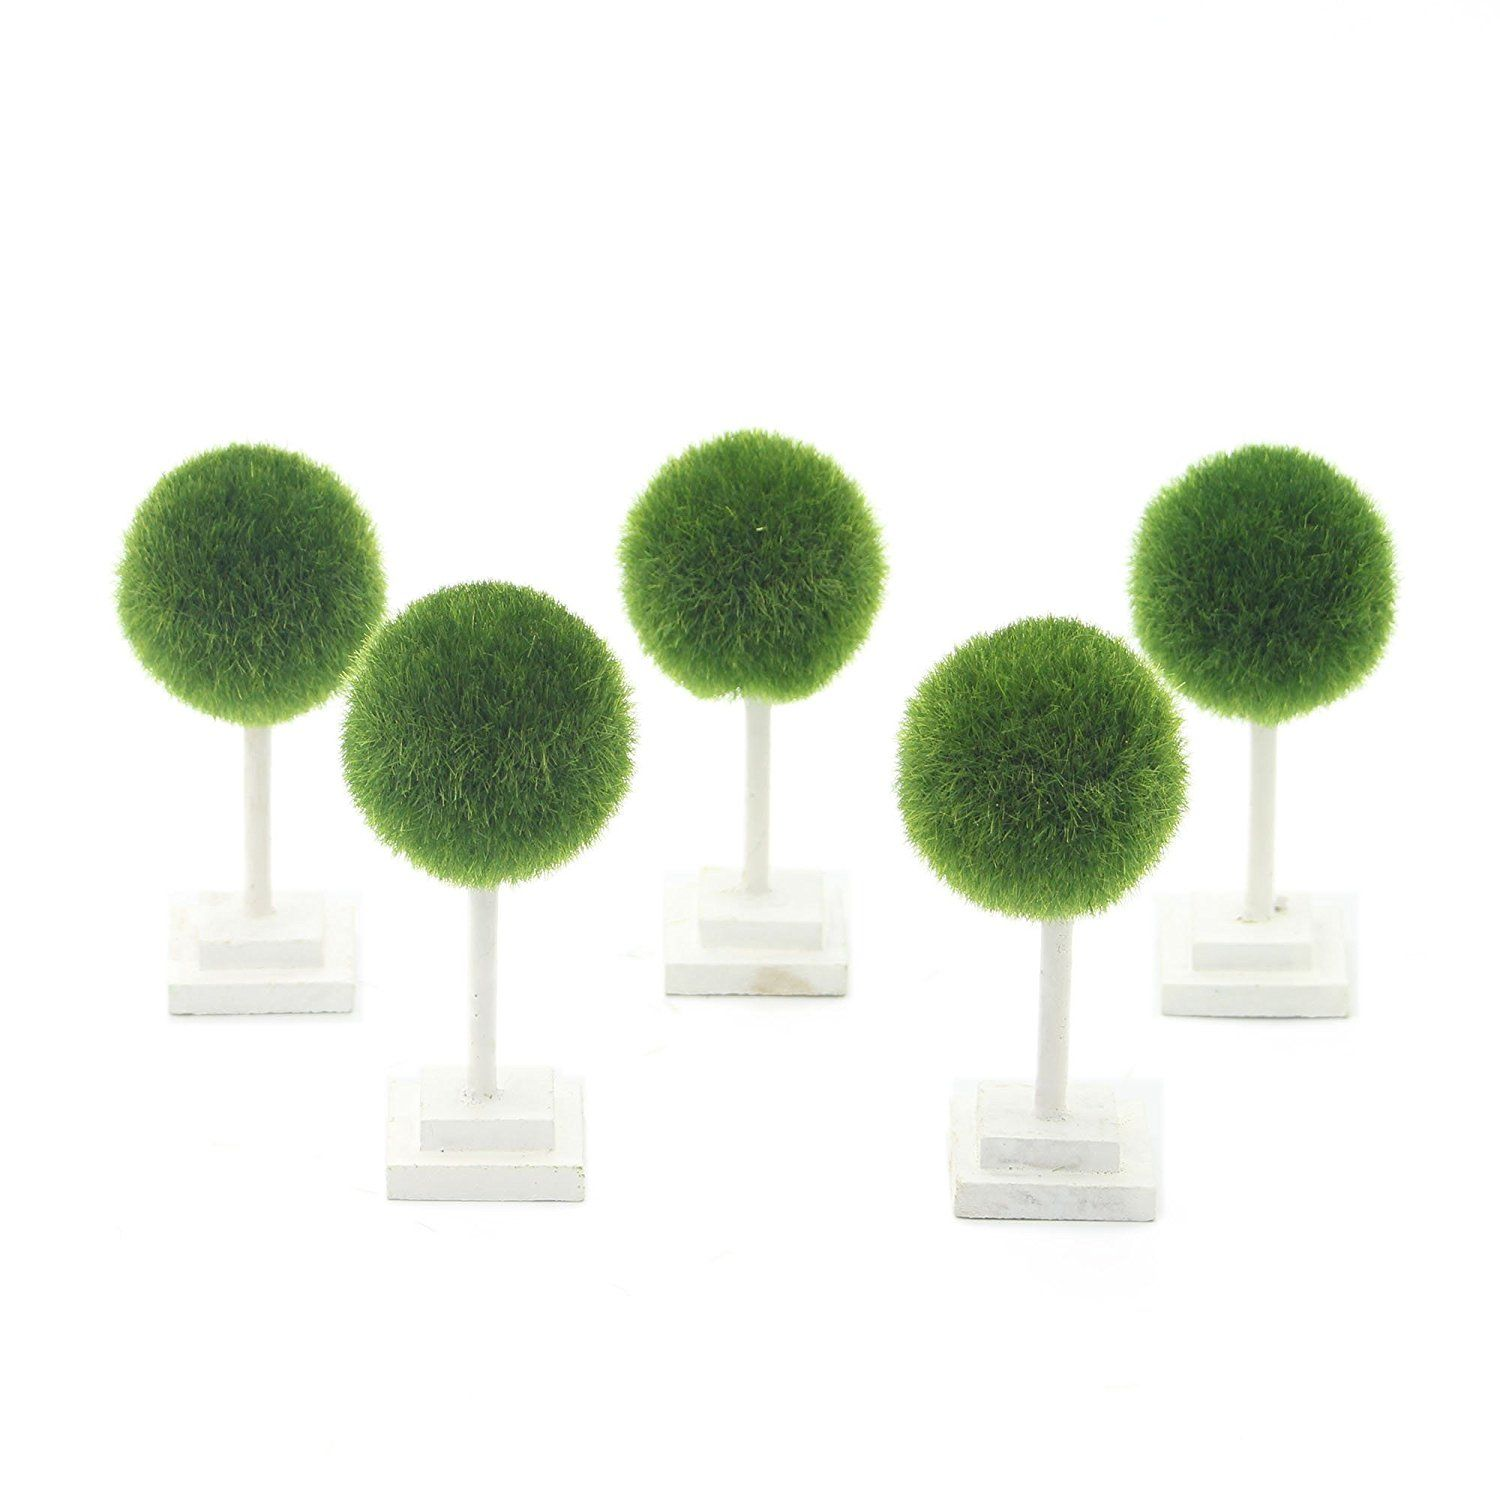 artificial plants for office decor. VIMI Mini Artificial Plants And Trees , Decor Bonsai For Office Desk Table Decorations Green Ball 4.6 Inch Set Of 5 *** Want Additional Info? L